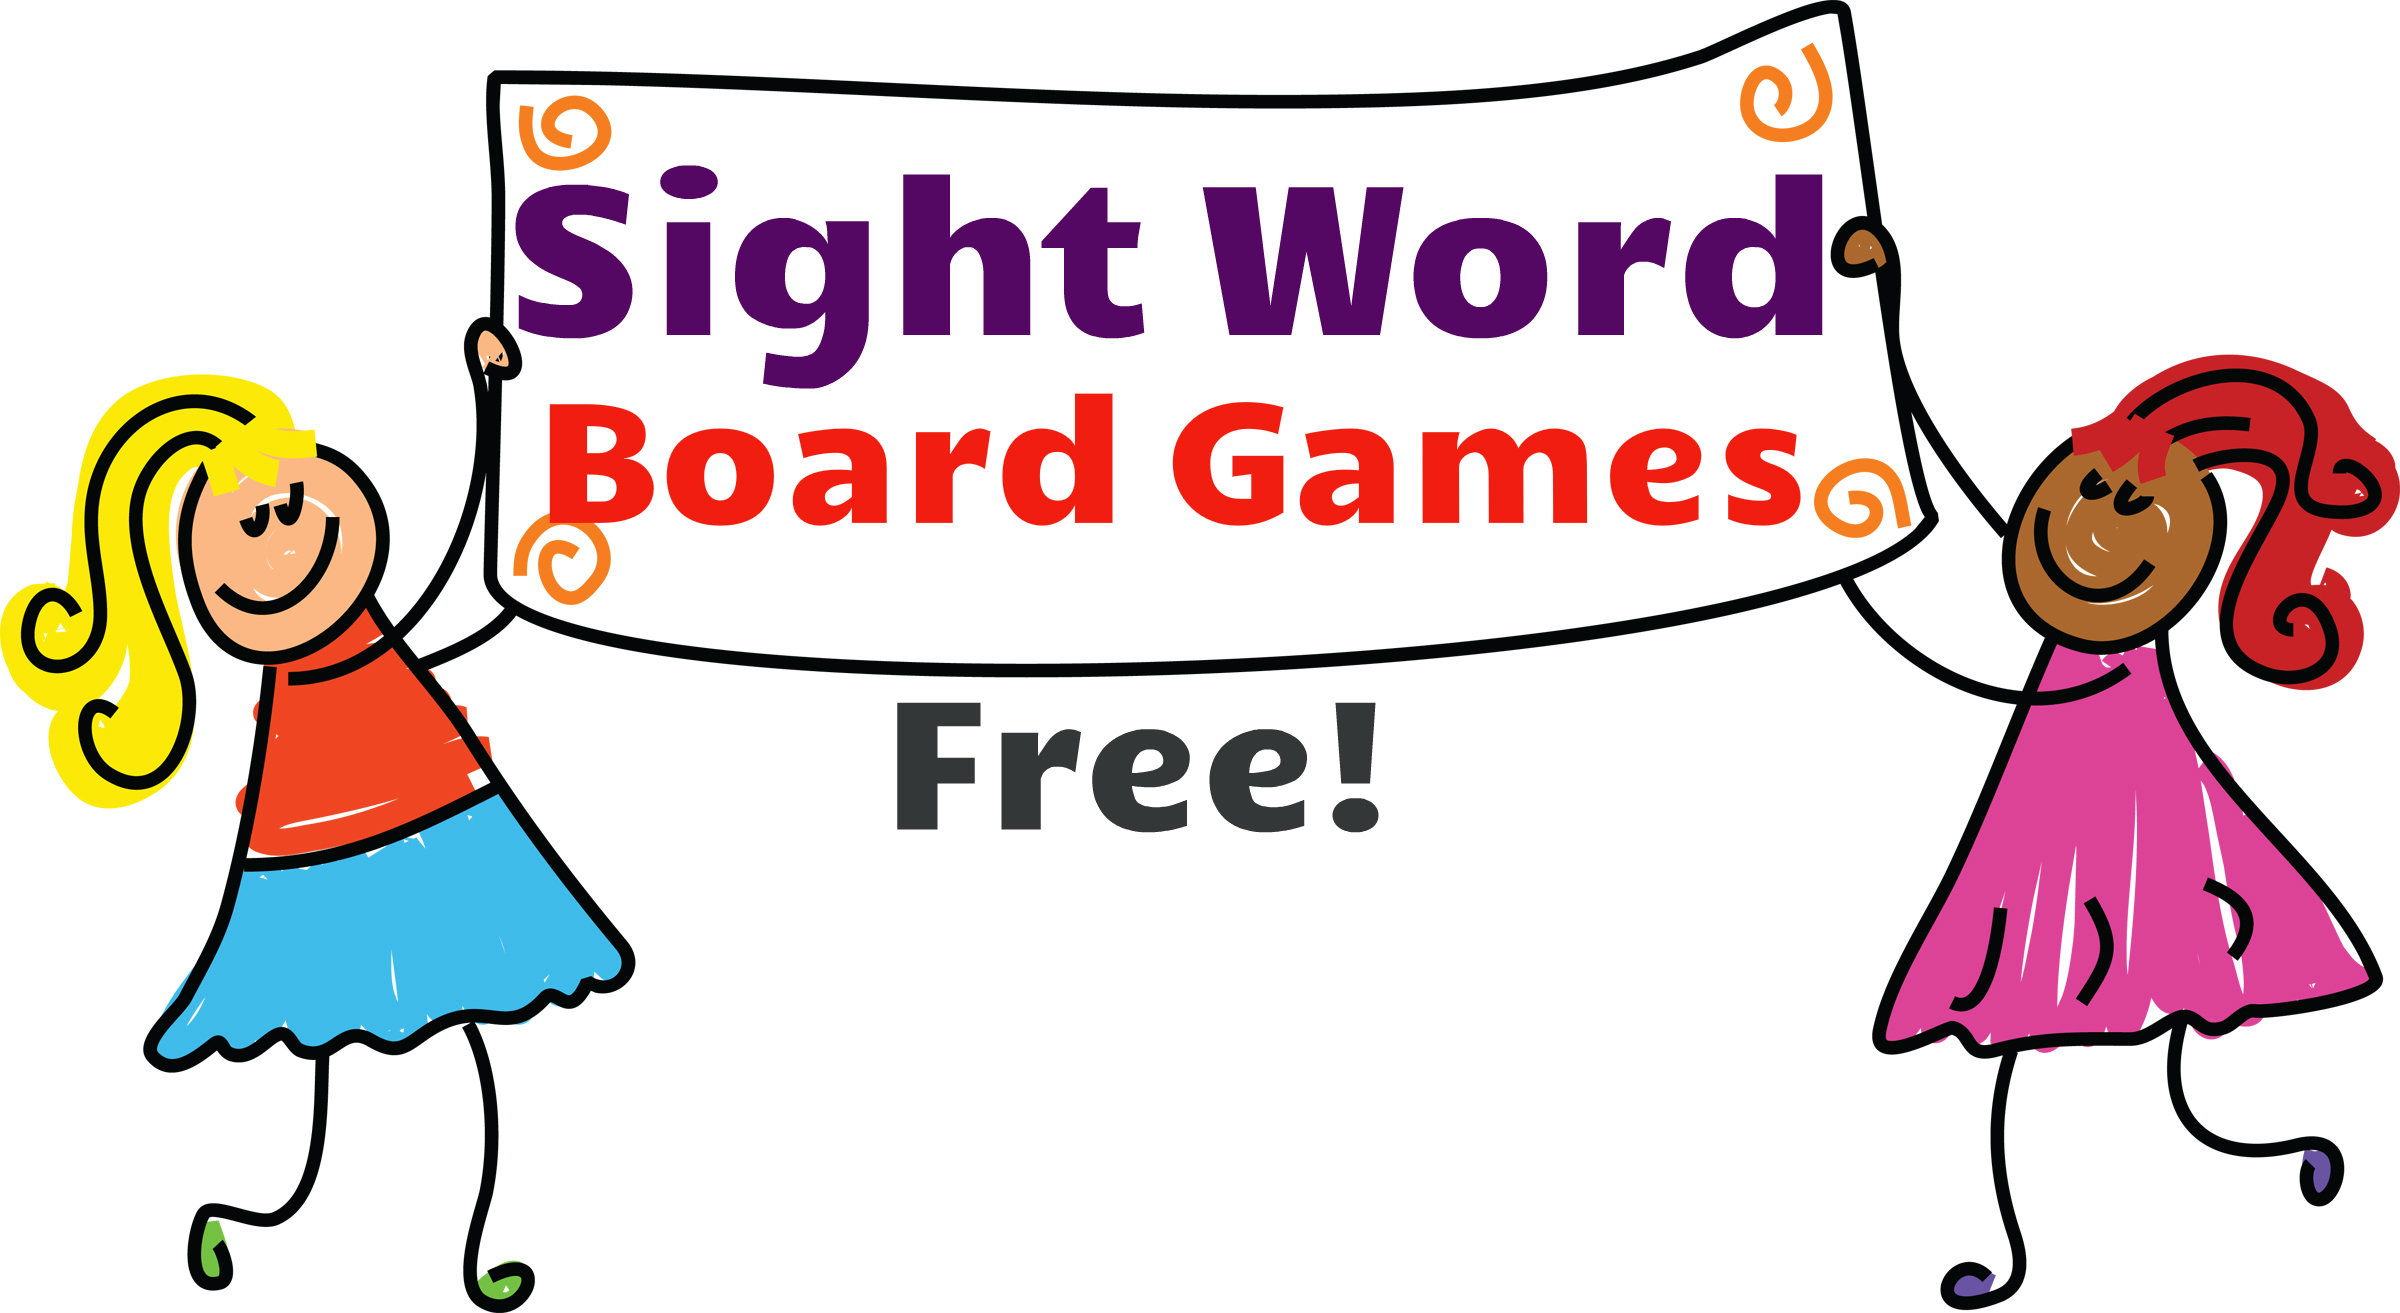 worksheet Sight Word Game sight word board games free activities readyteacher com games